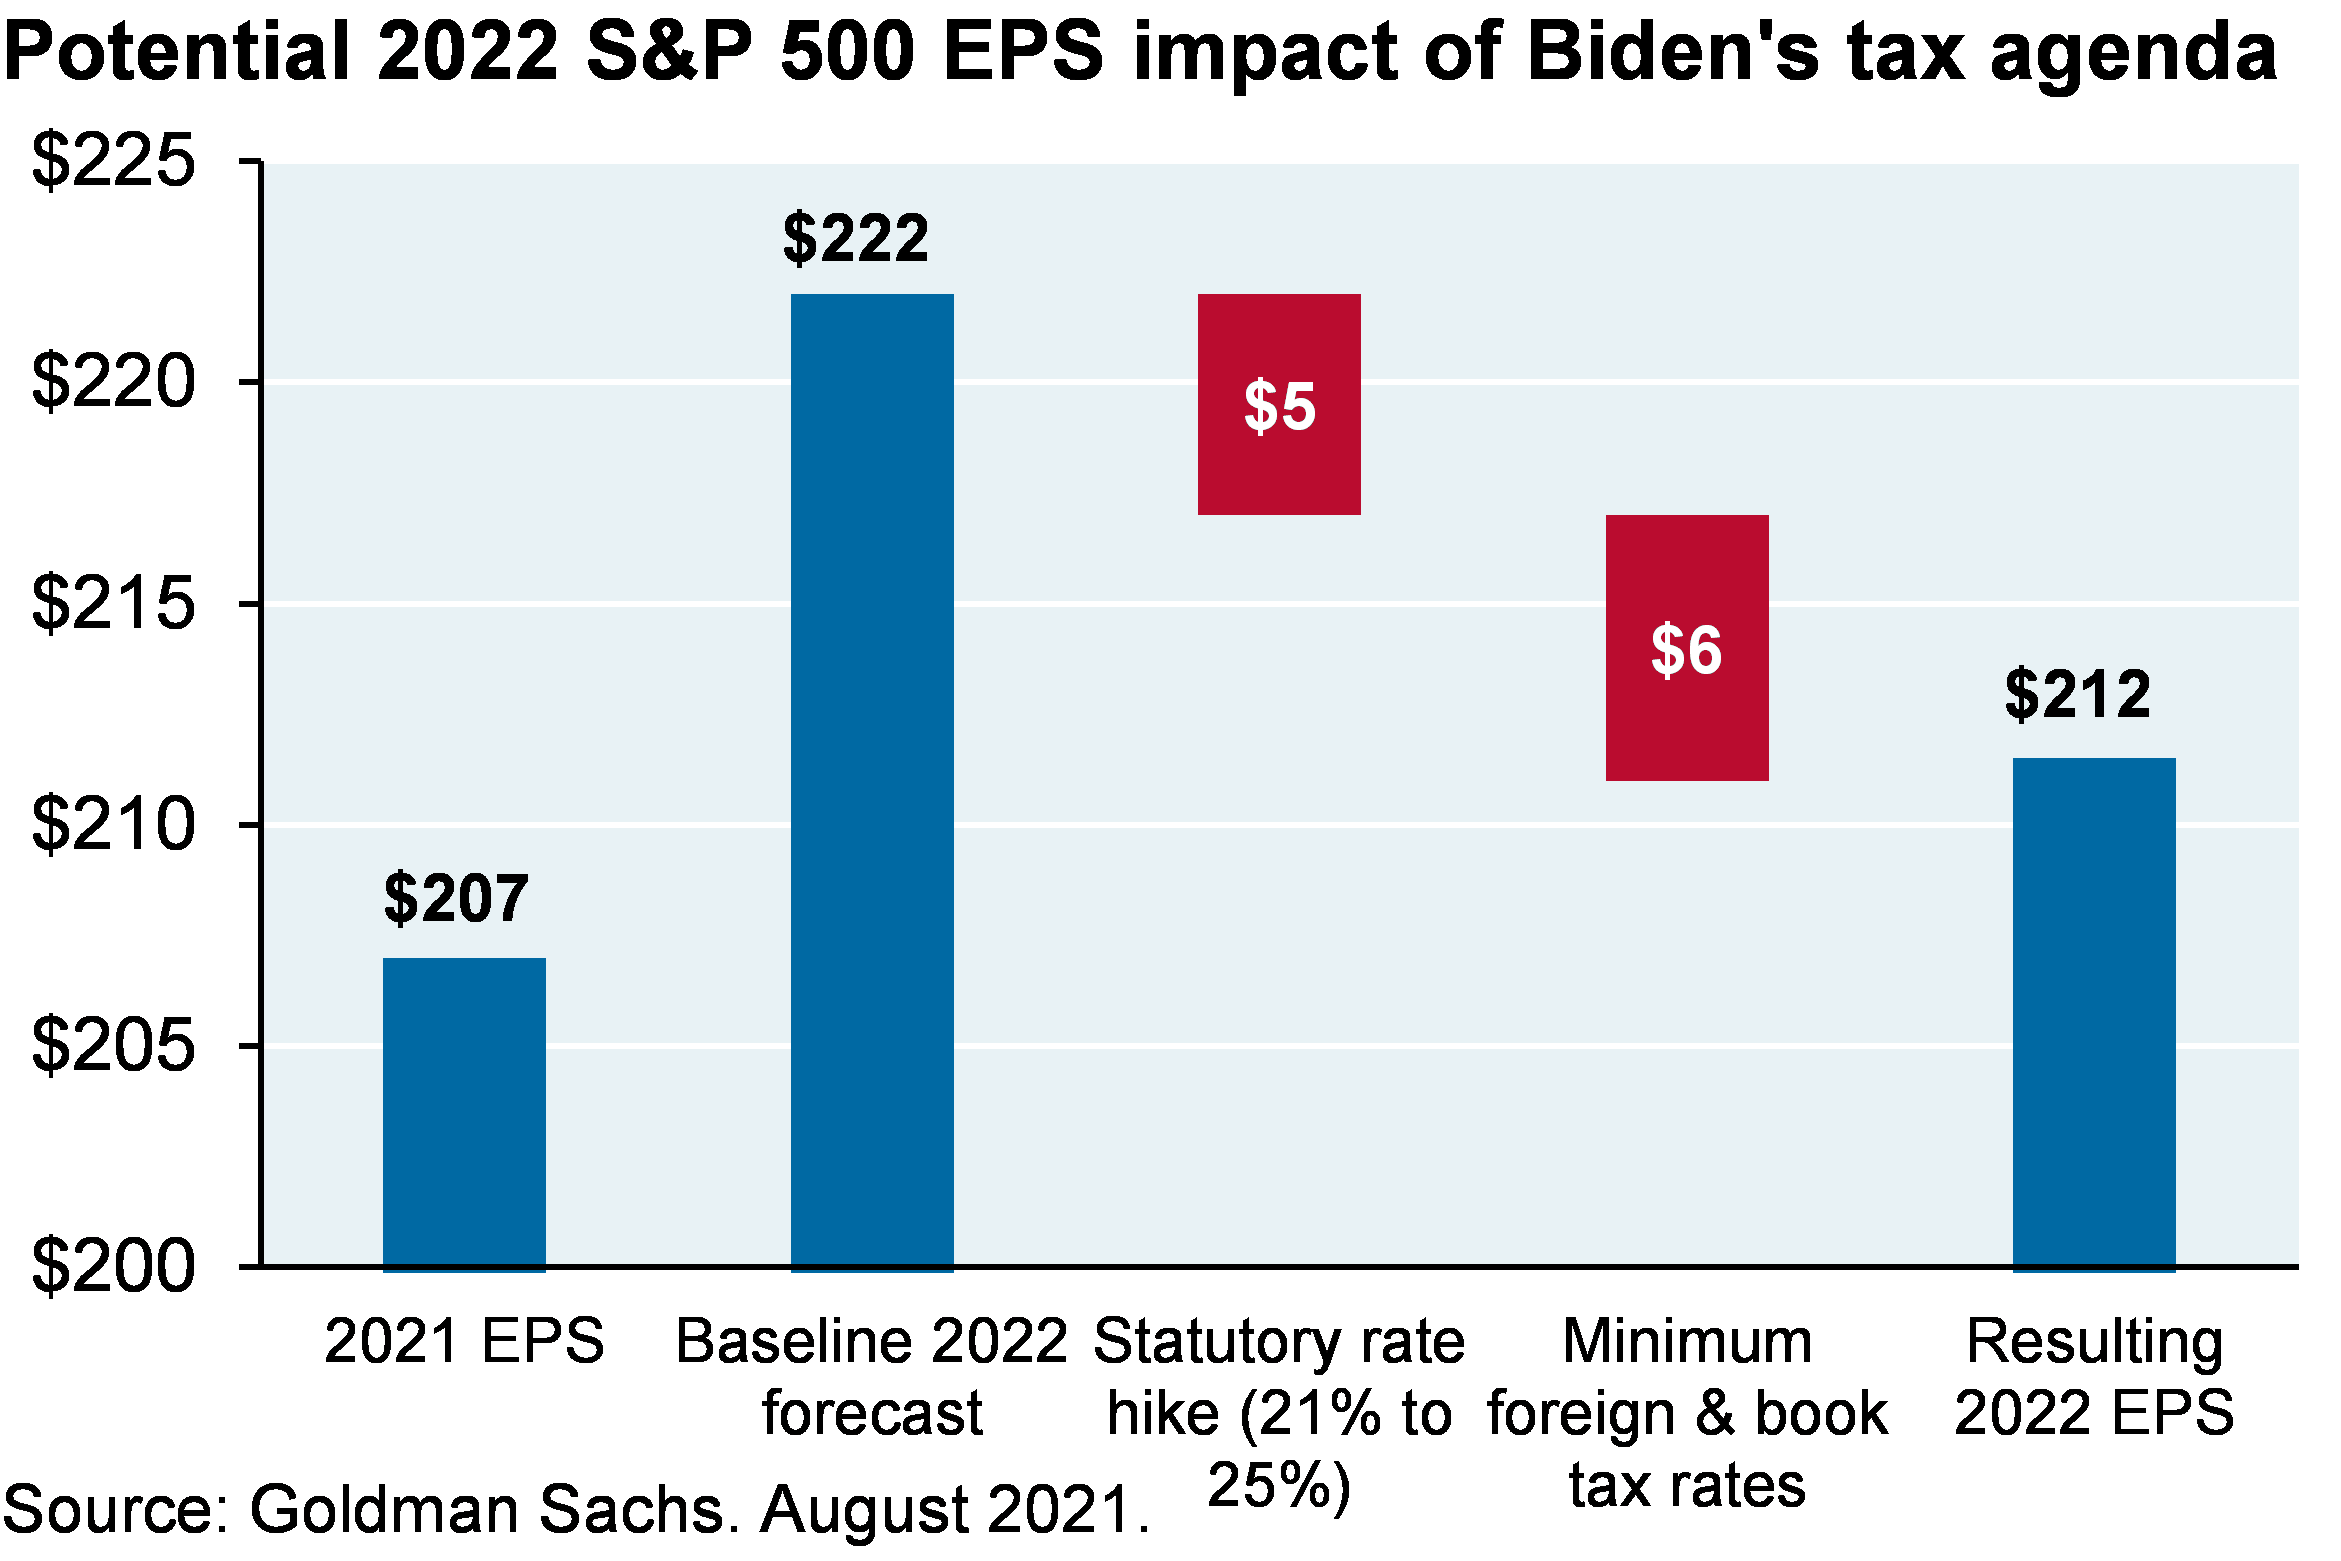 Bar chart shows the potential S&P 500 EPS impact of Biden's tax agenda. The changes to the statutory rate and minimum foreign & book tax rates would result in a modest 5% hit to 2022 EPS.